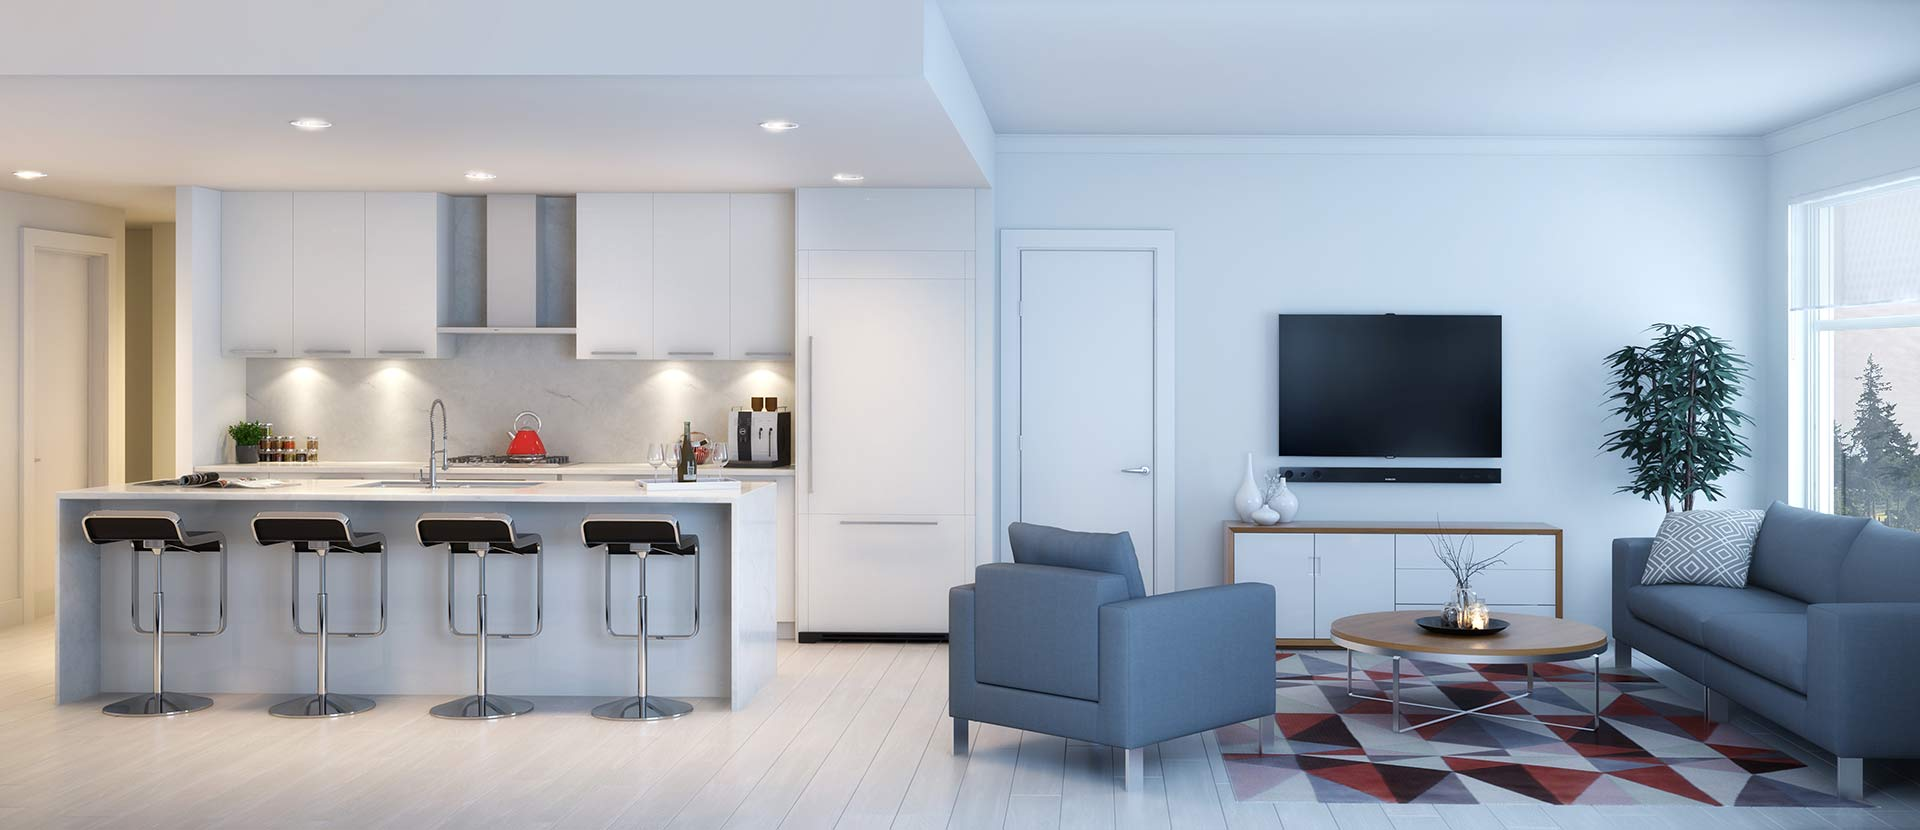 Virtuoso townhome living room and kitchen rendering